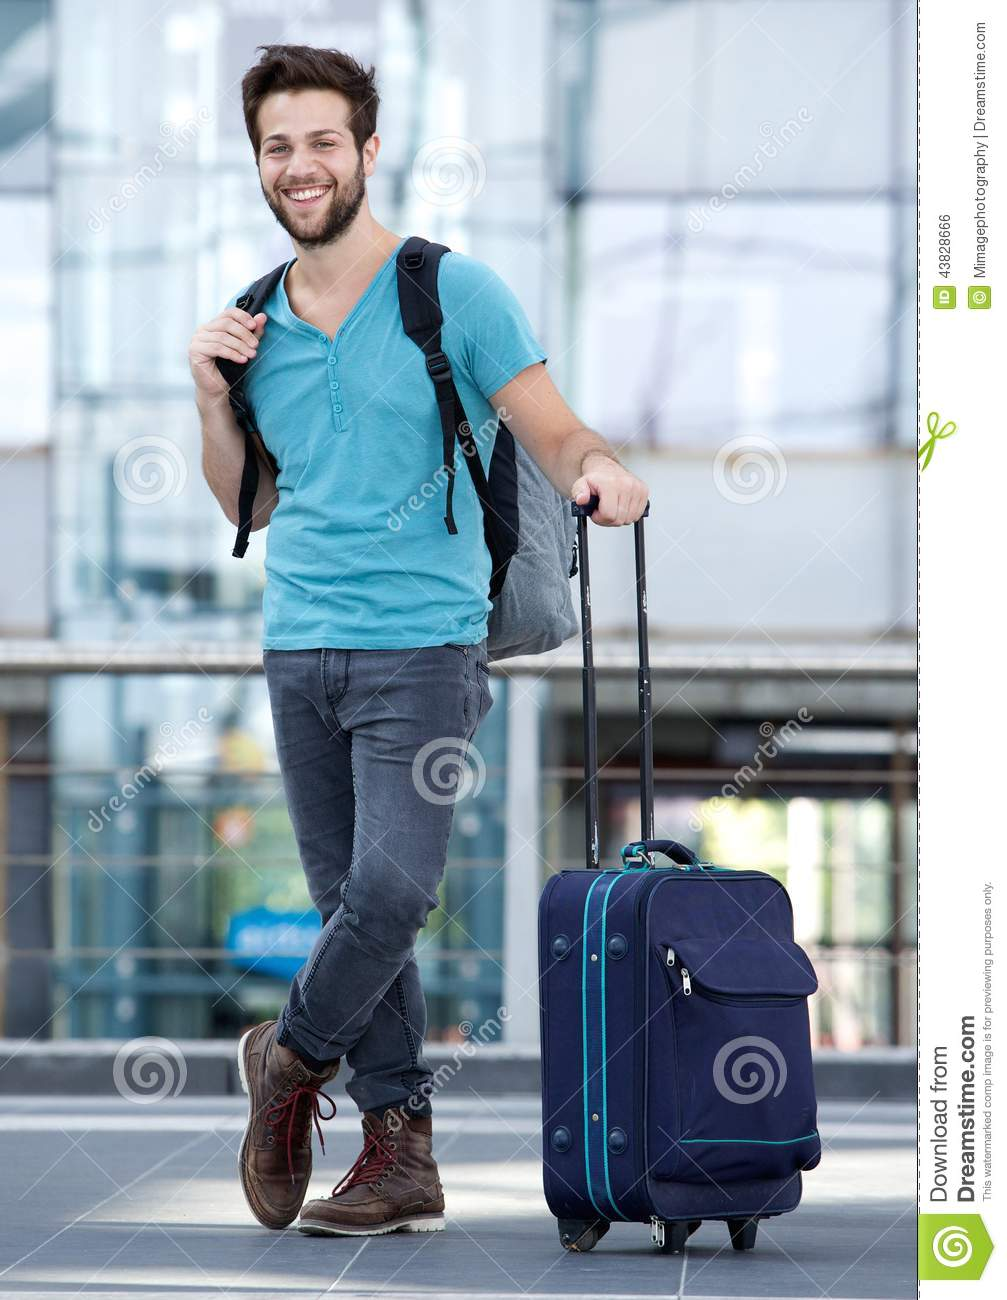 Ultimate Travelchecklisttravefy likewise 14320983 besides Tips For Moving Into A College Dorm Room also 3827254 Handmade Vintage Leather Travel Bag Leather Handbag Leather Messenger Ba together with Royalty Free Stock Photography Passport St s Image5740427. on cell phone with suitcase